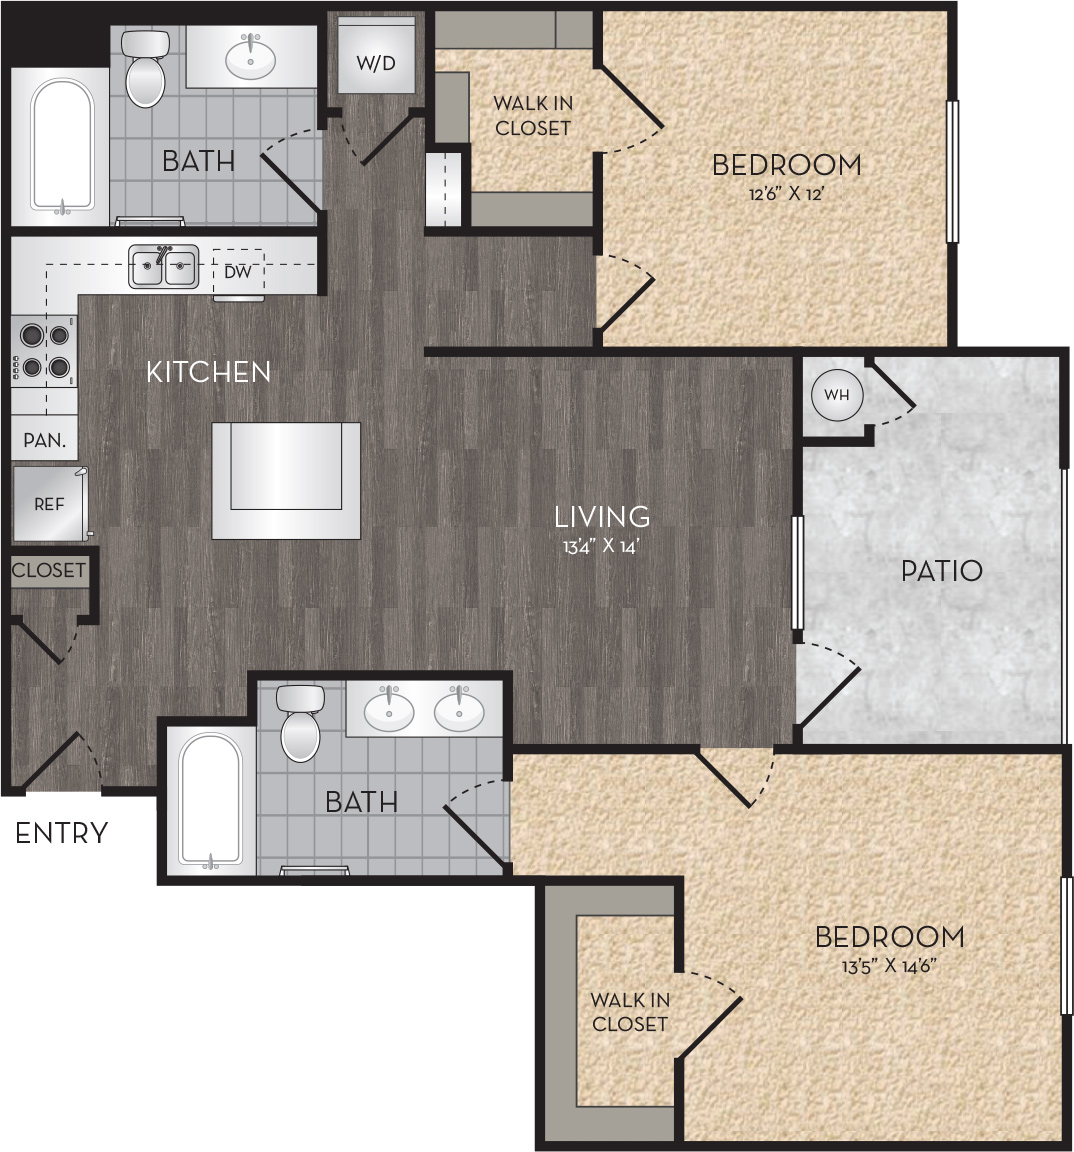 Plan B3 - 2 Bedroom, 2 Bath Floor Plan